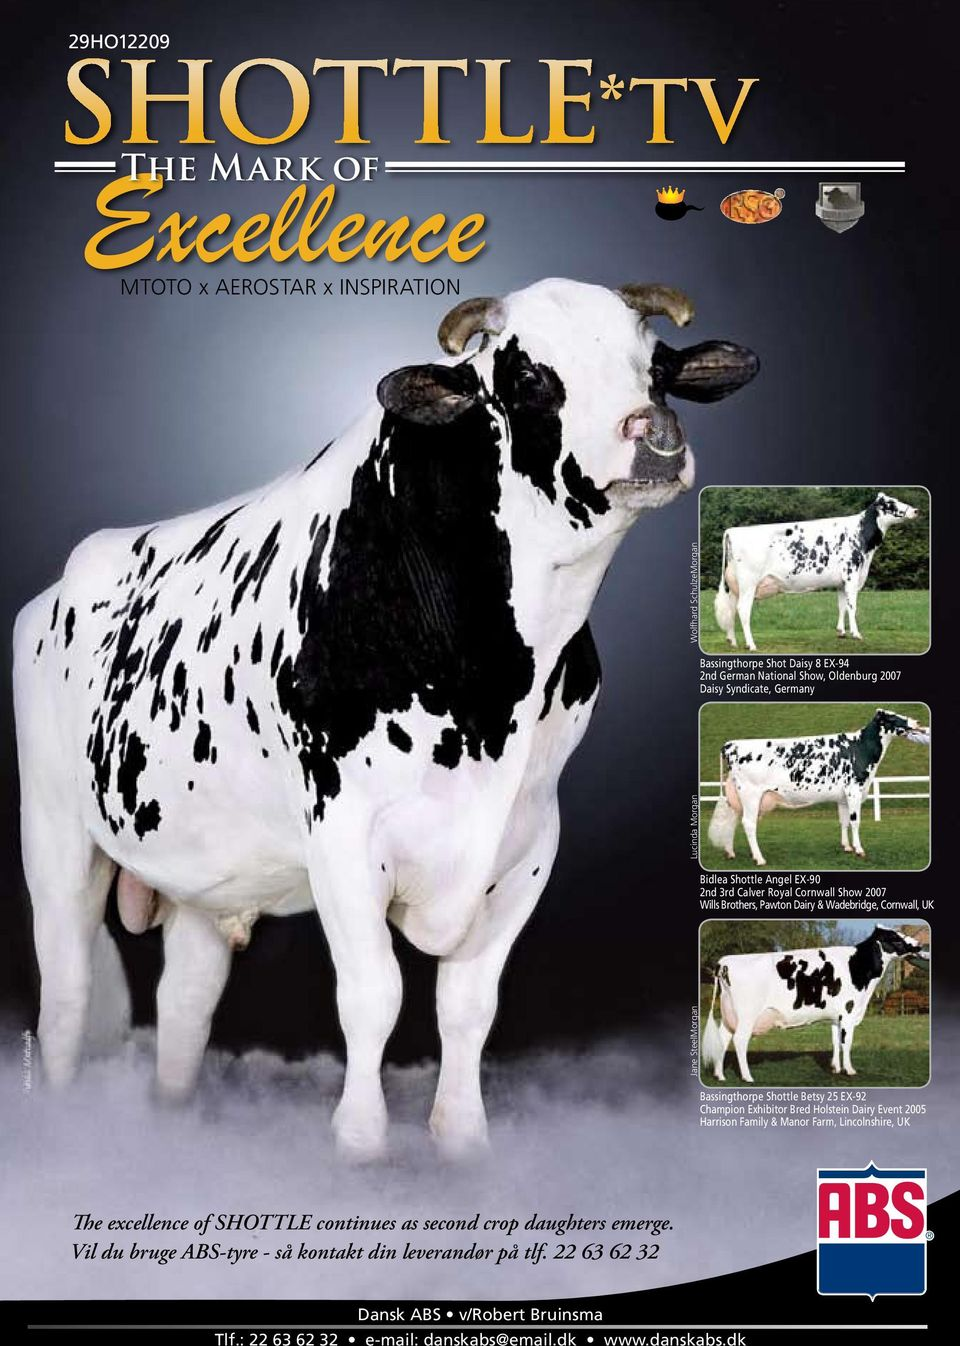 Shottle Betsy 25 EX-92 Champion Exhibitor Bred Holstein Dairy Event 2005 Harrison Family & Manor Farm, Lincolnshire, UK The excellence of SHOTTLE continues as second crop daughters